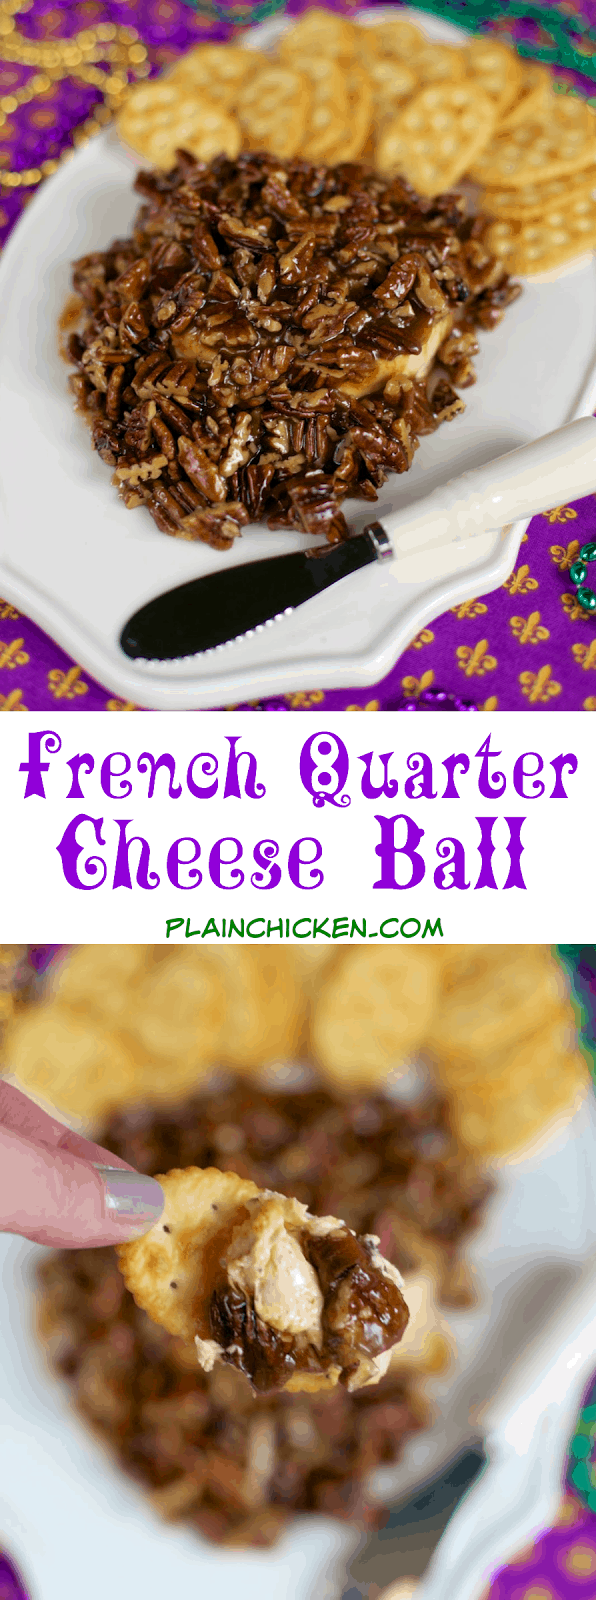 French Quarter Cheese Ball - sweet and savory in every bite! Quick cajun cheese ball topped with an easy praline topping. This is THE BEST! I took it to a party and it was gone in a flash! Everyone asks for the recipe! Perfect for Mardi Gras!